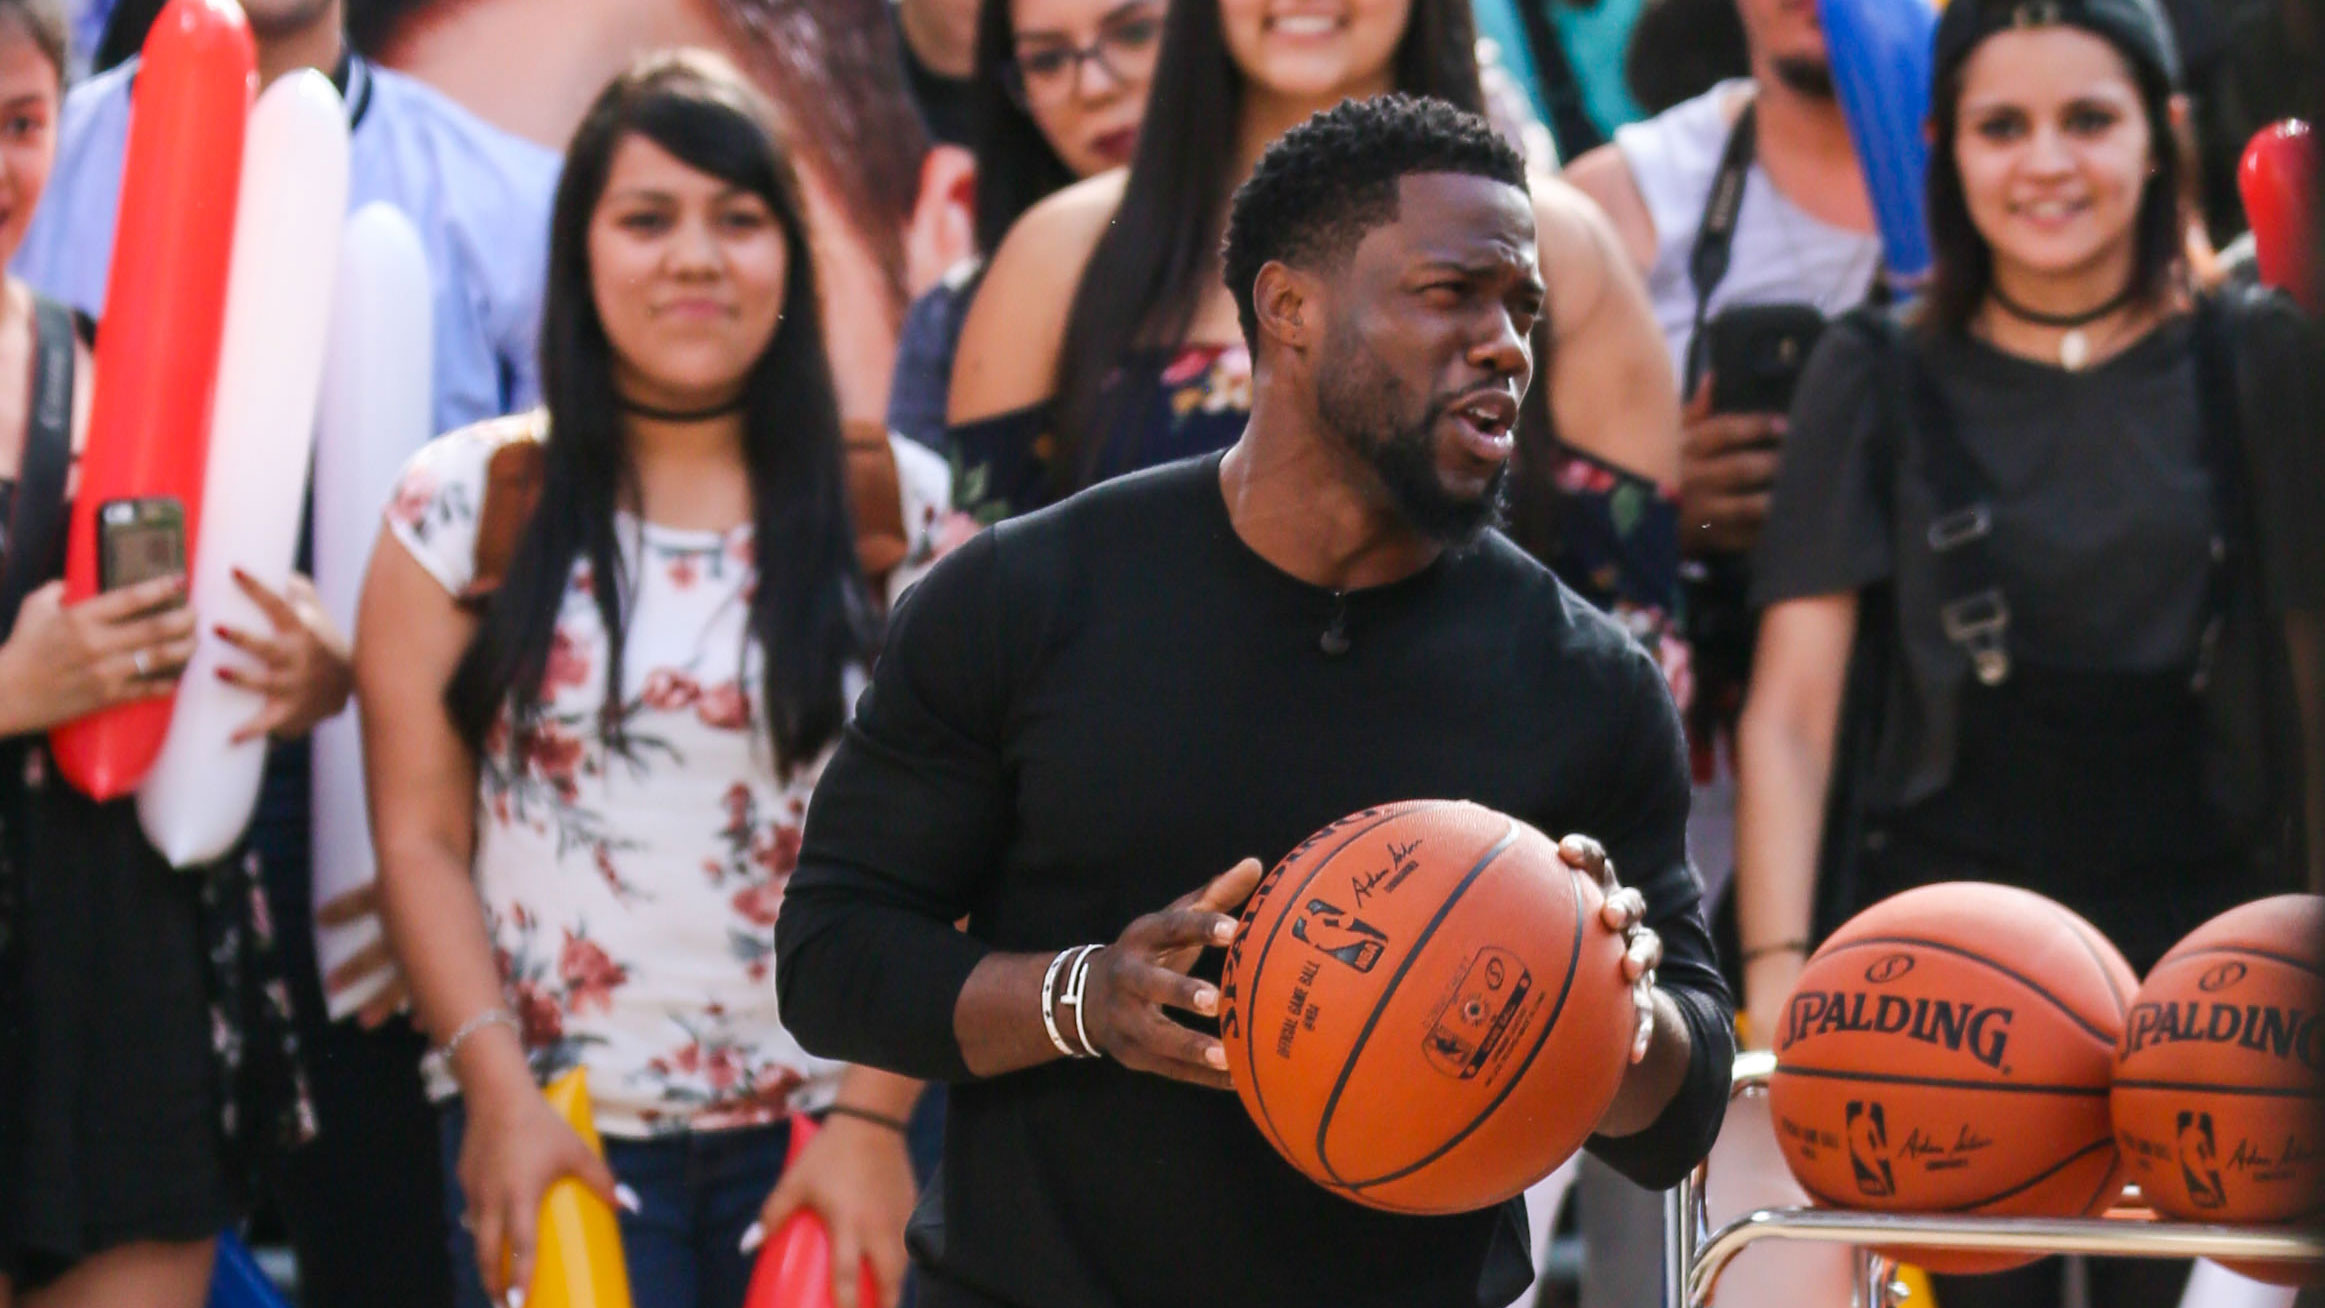 Kevin Hart holding a basketball on Jimmy Kimmel Live.